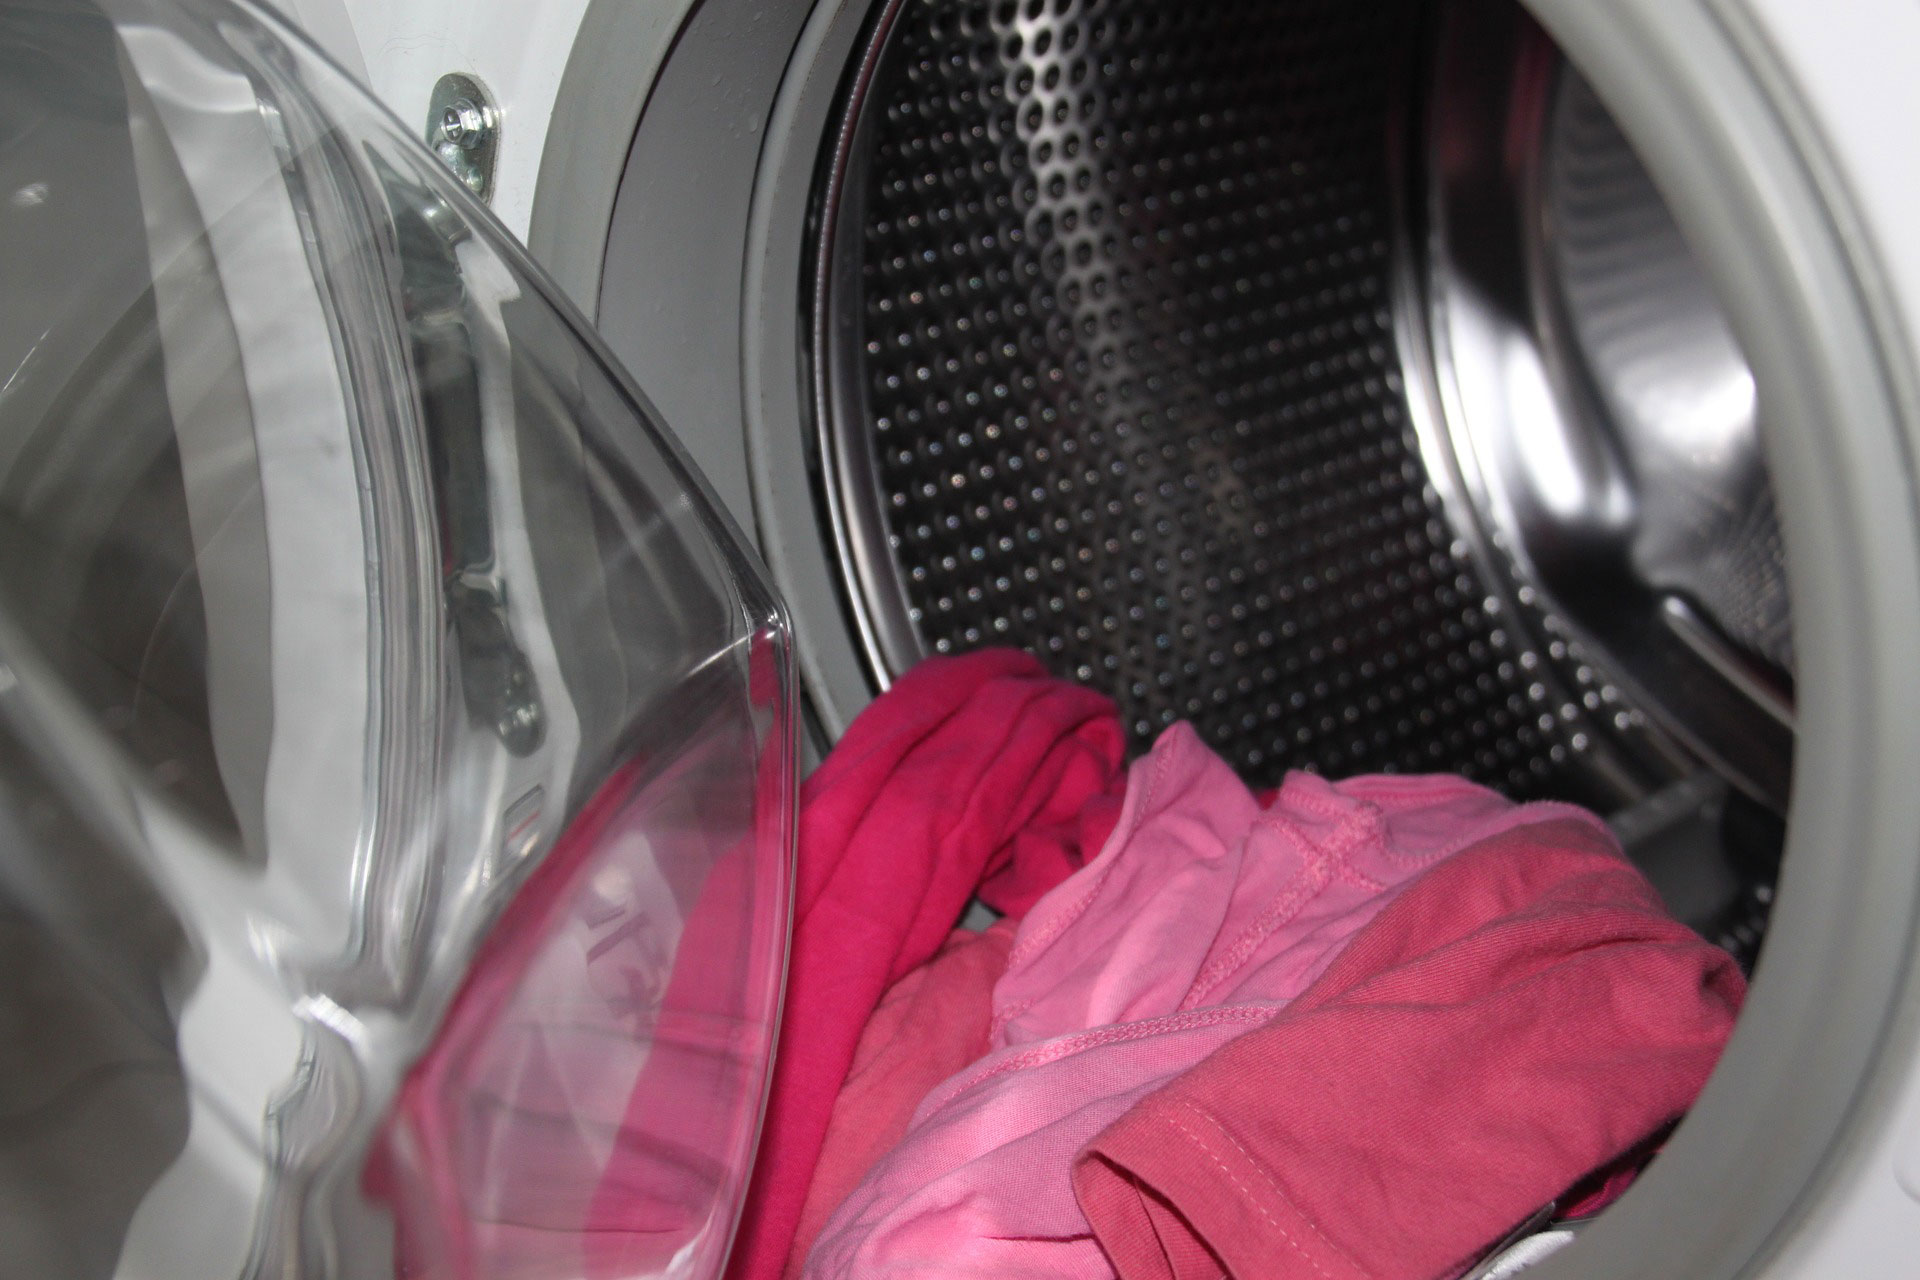 Can washing machine damage clothes